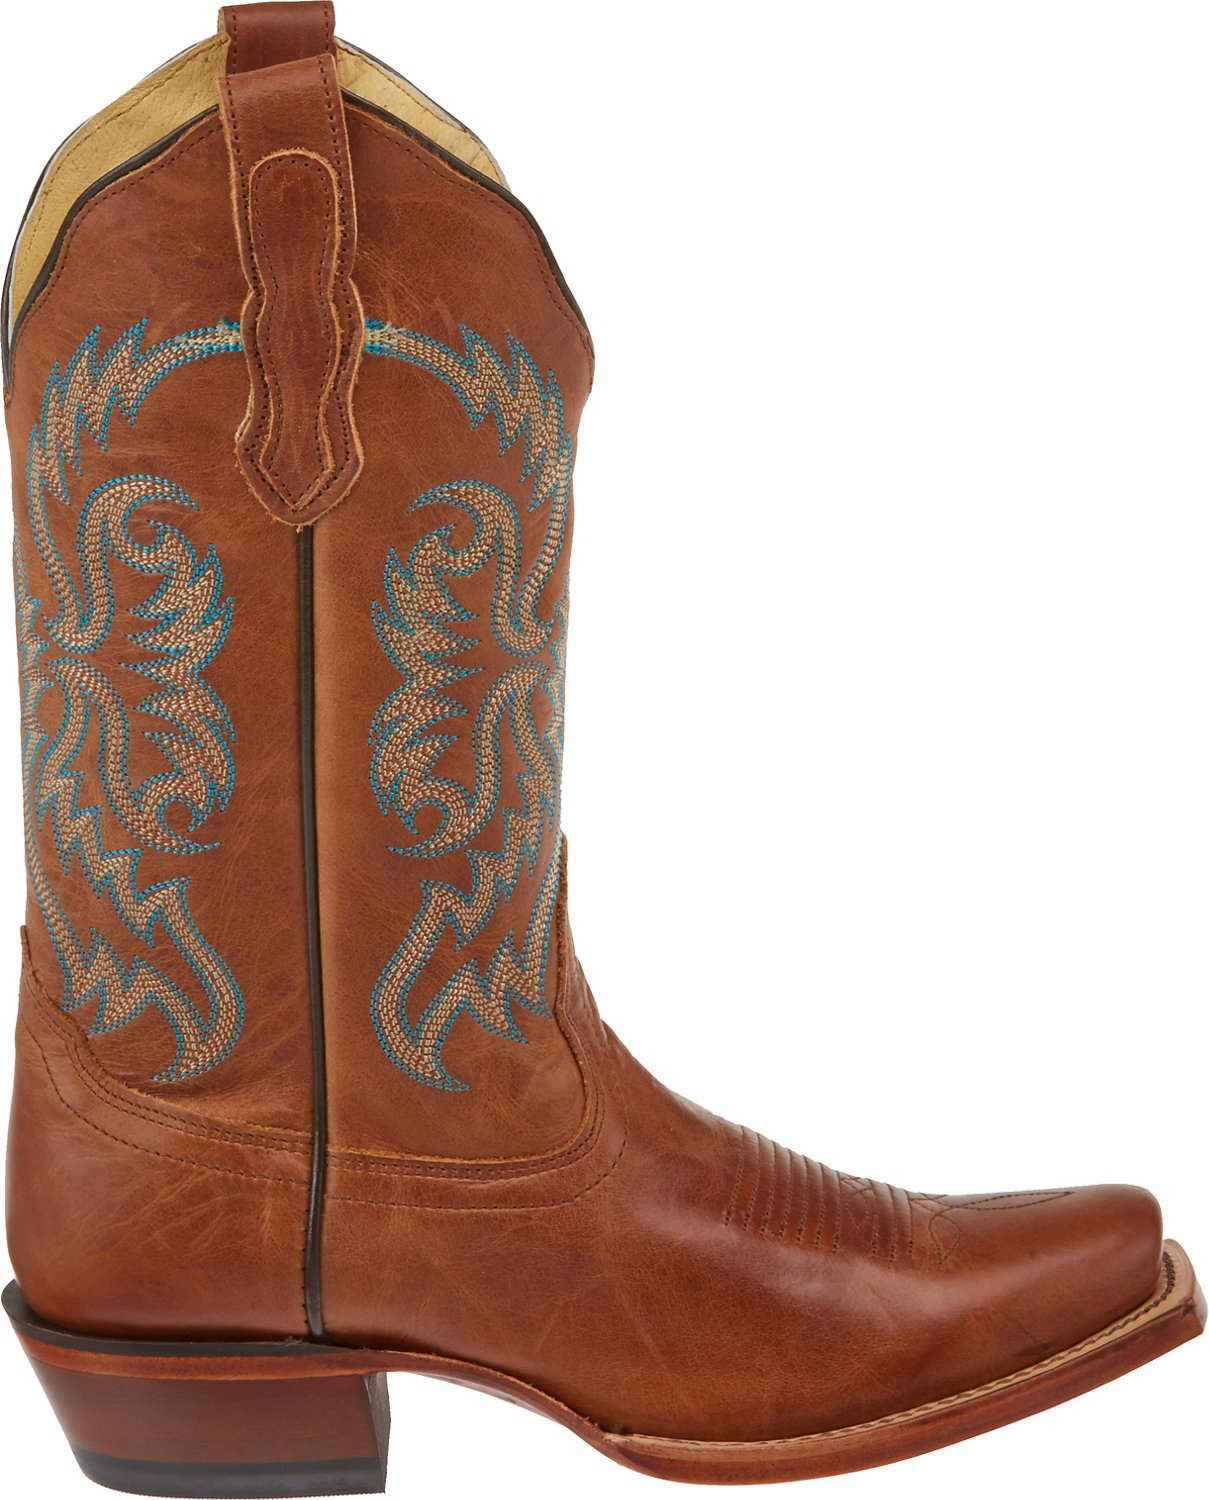 Nocona Boots Women's Fashion Western Boots - view number 3